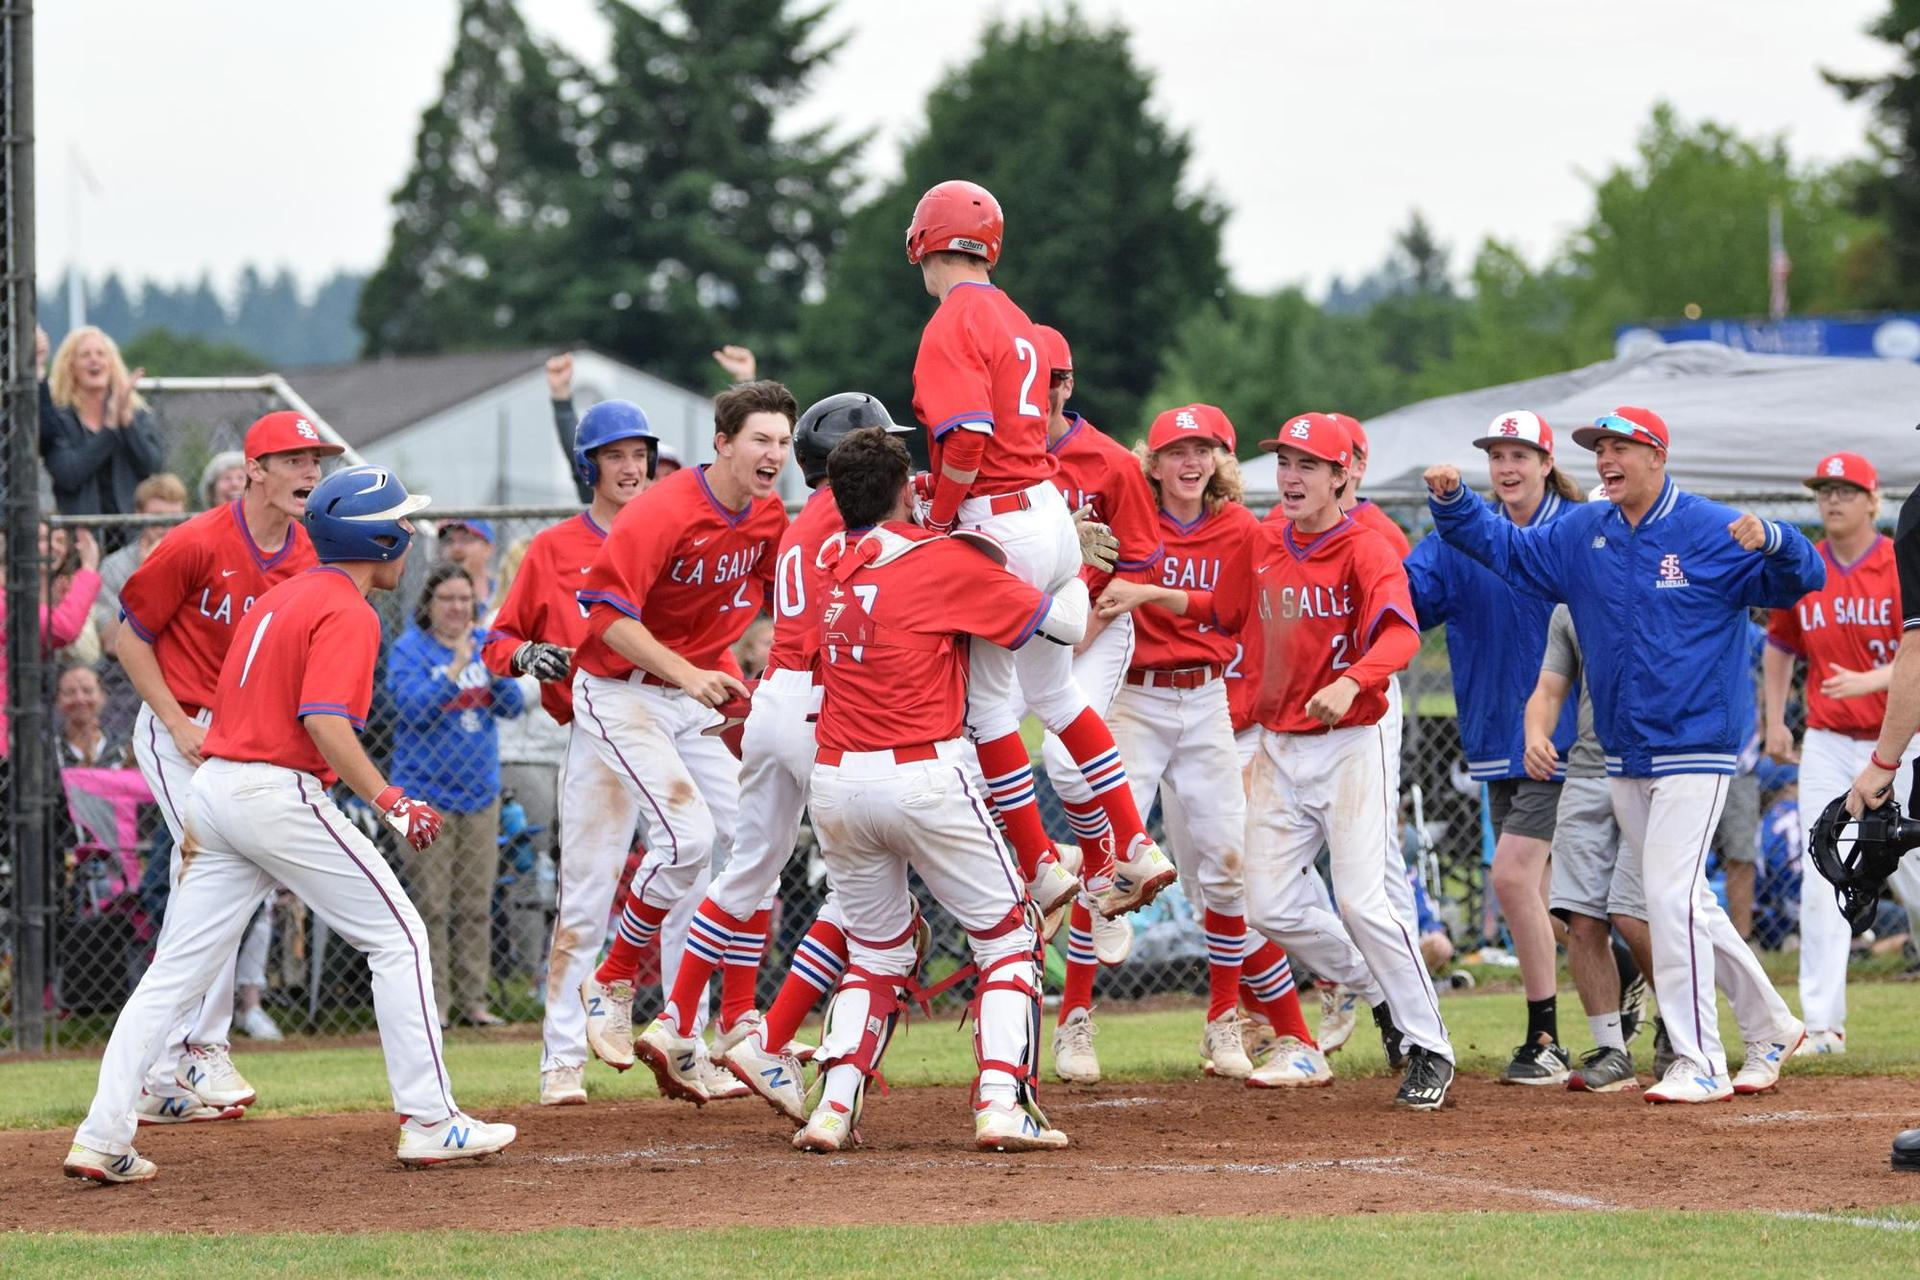 baseball team celebrates after a grand slam home run